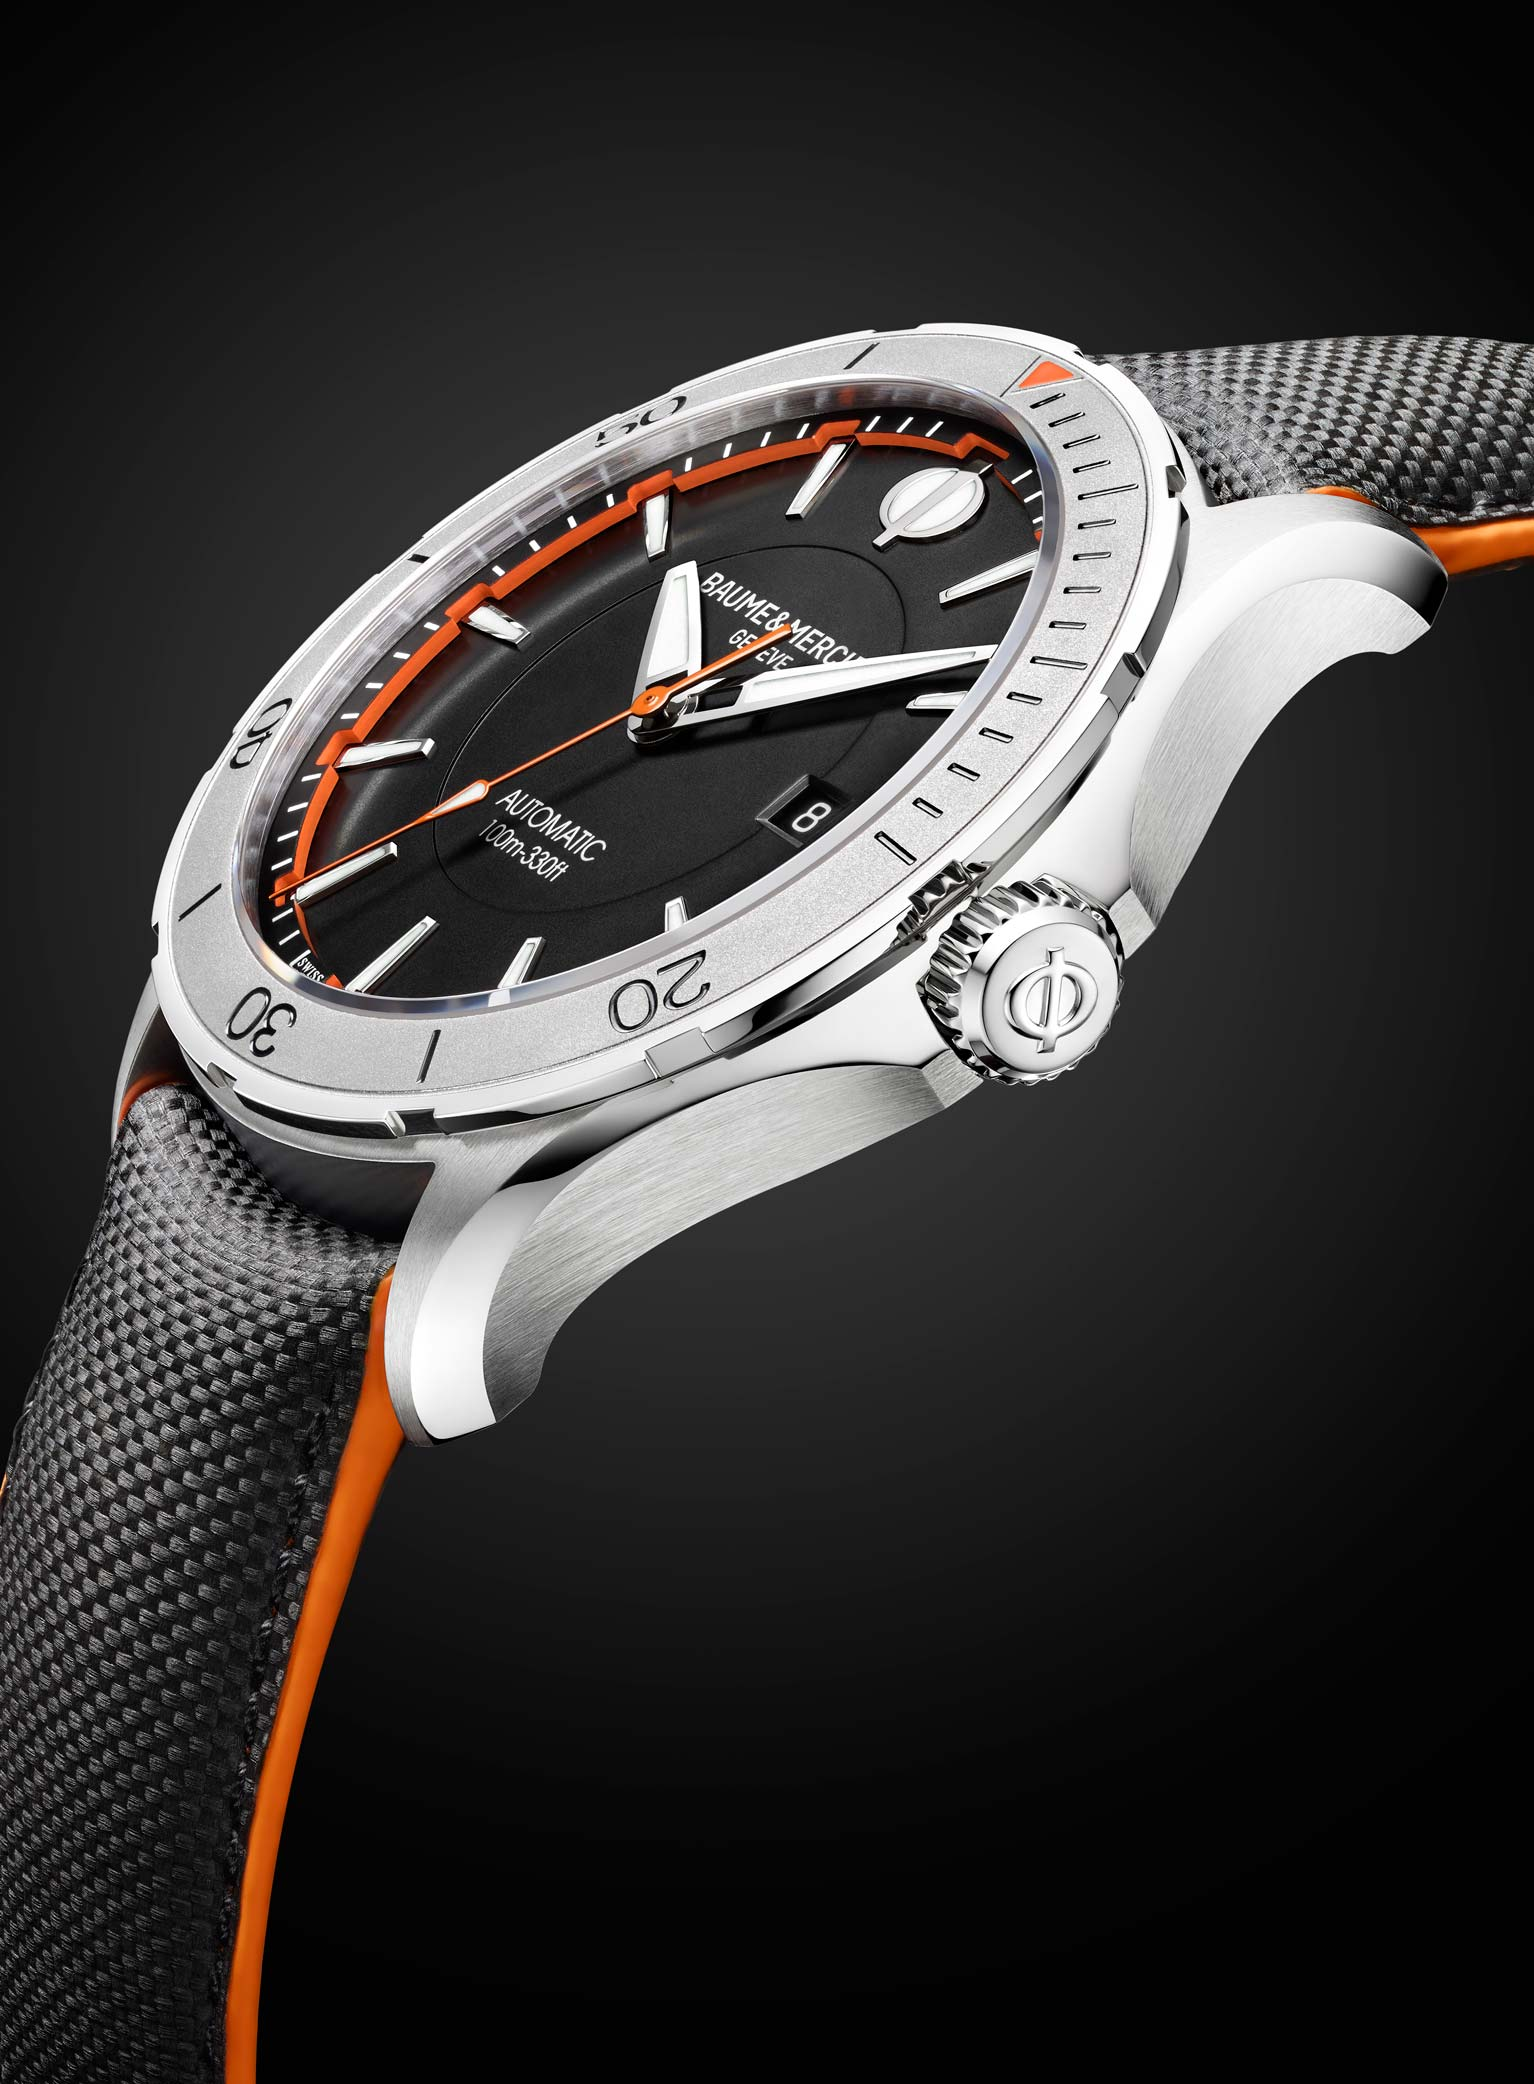 Each Baume & Mercier Clifton Club Collection watch features bold orange accents.